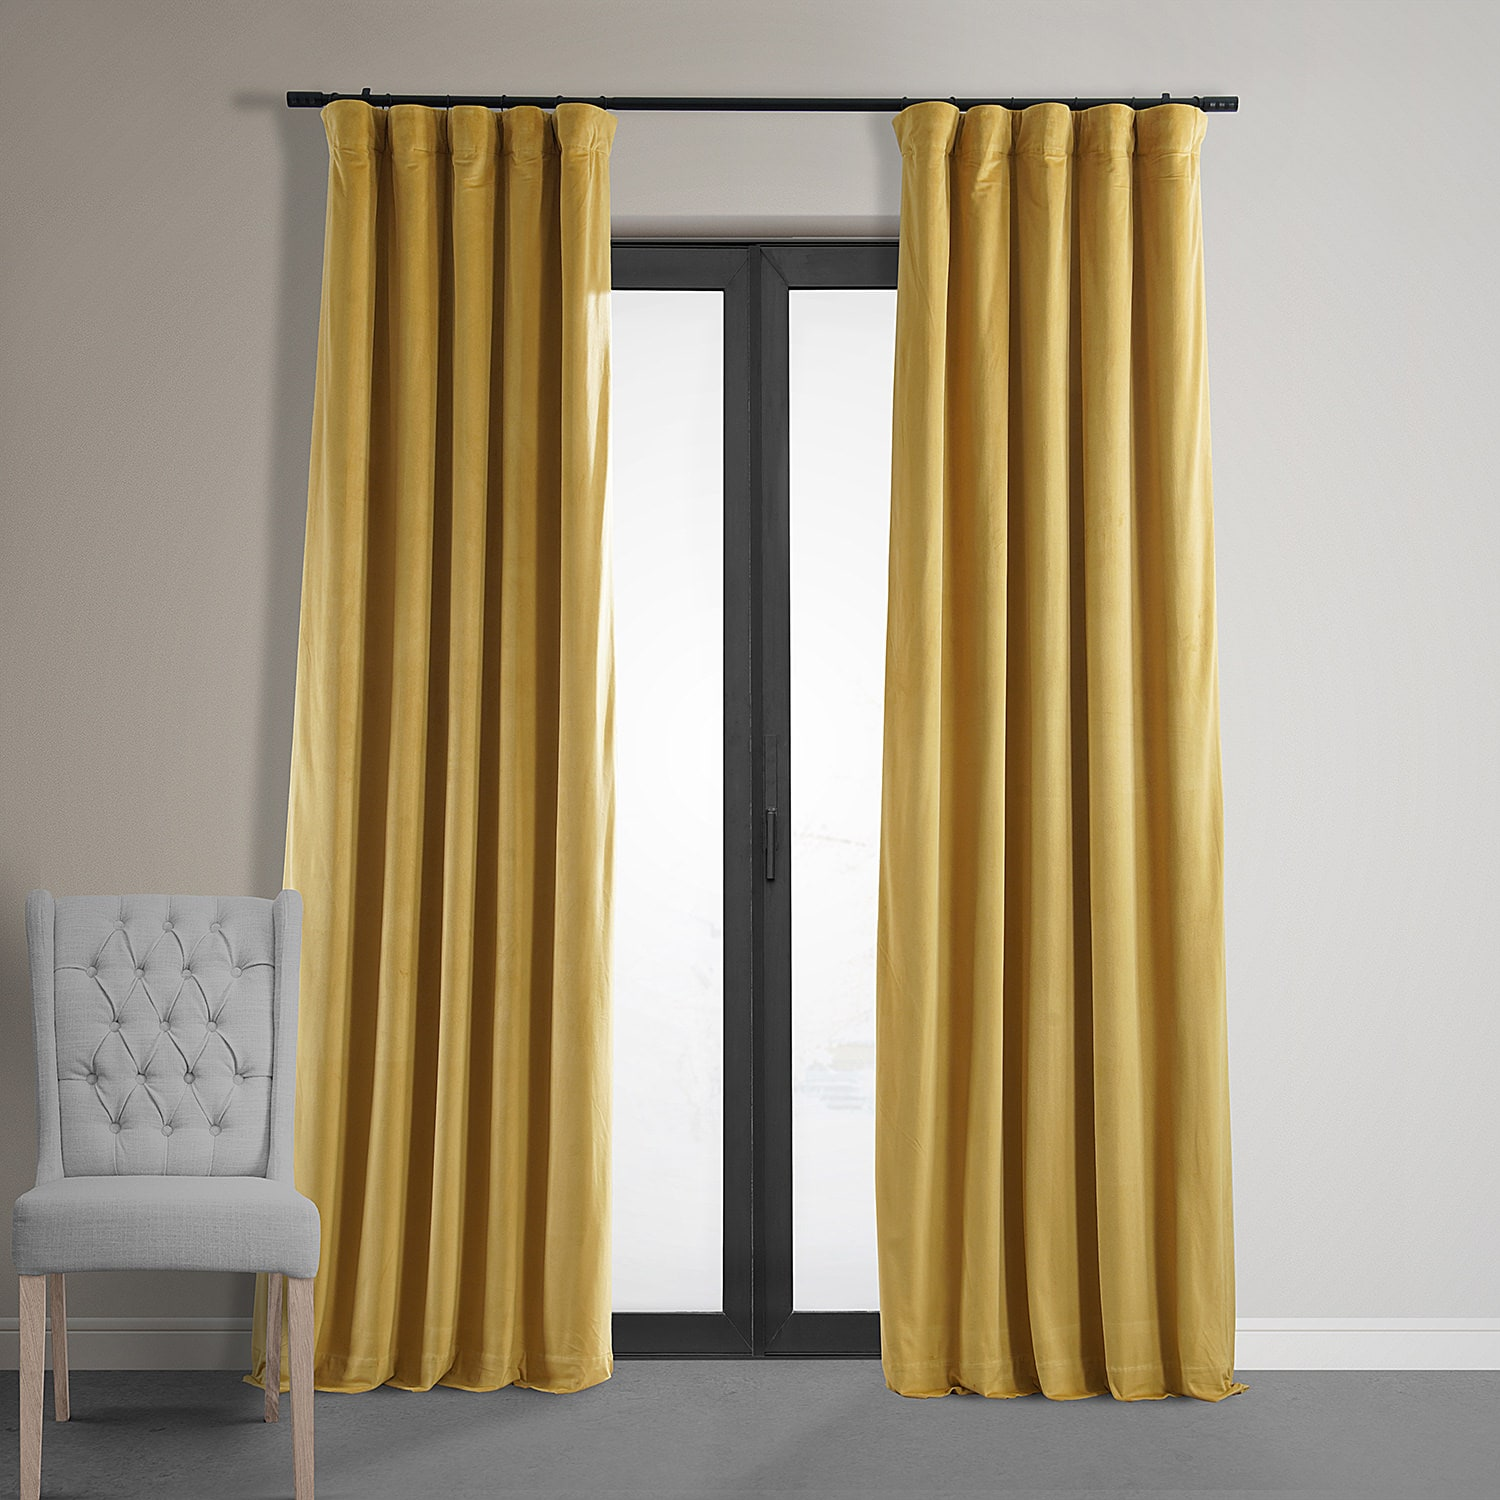 Signature Fool's Gold Blackout Velvet Curtain